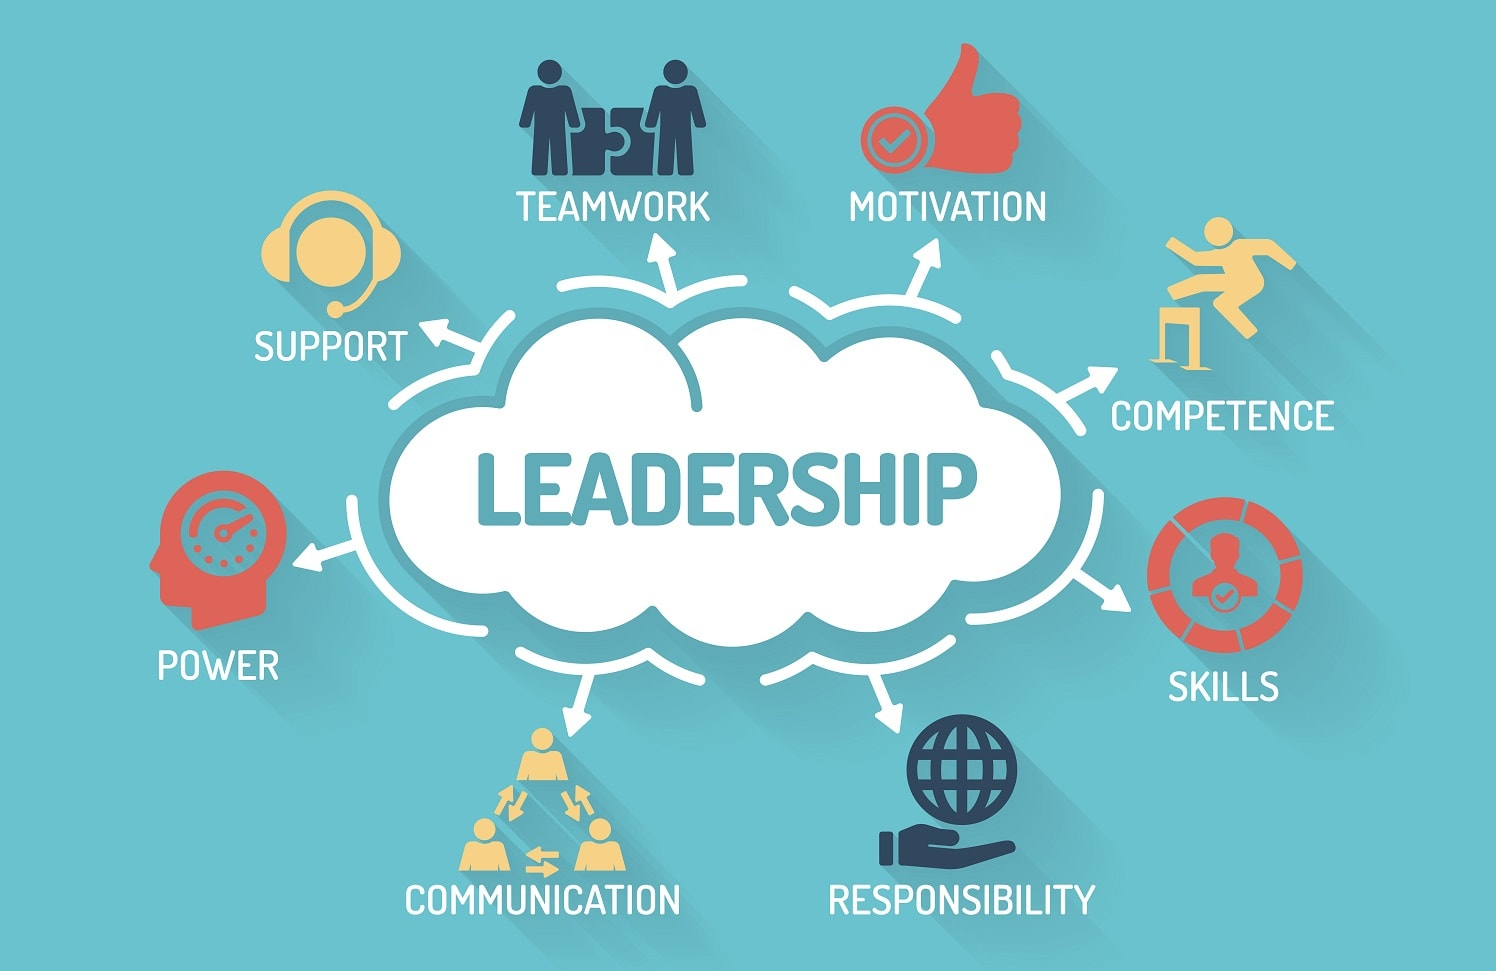 Leadership is a multi-faceted skill that takes many forms.